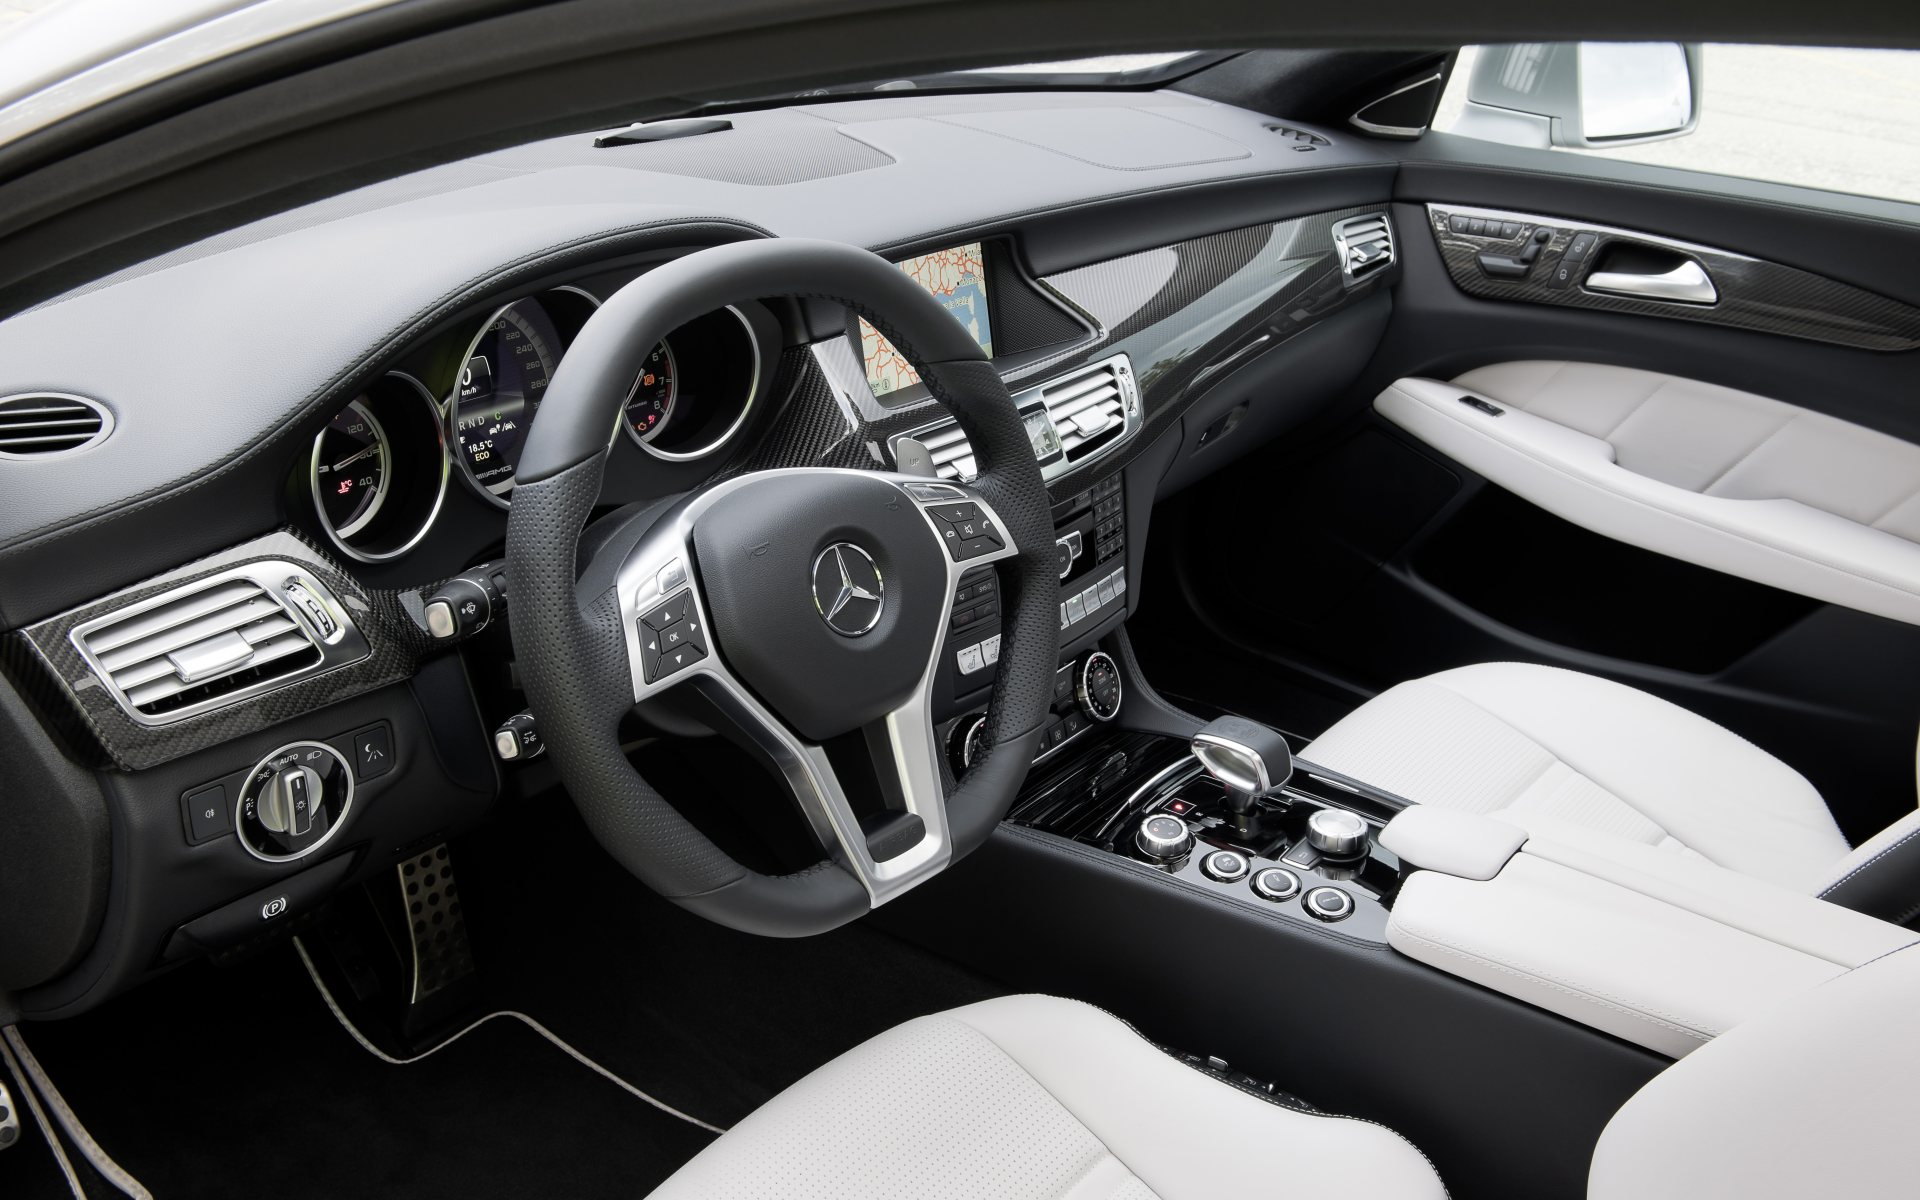 2012_cls_shootingbrake_002_interieur